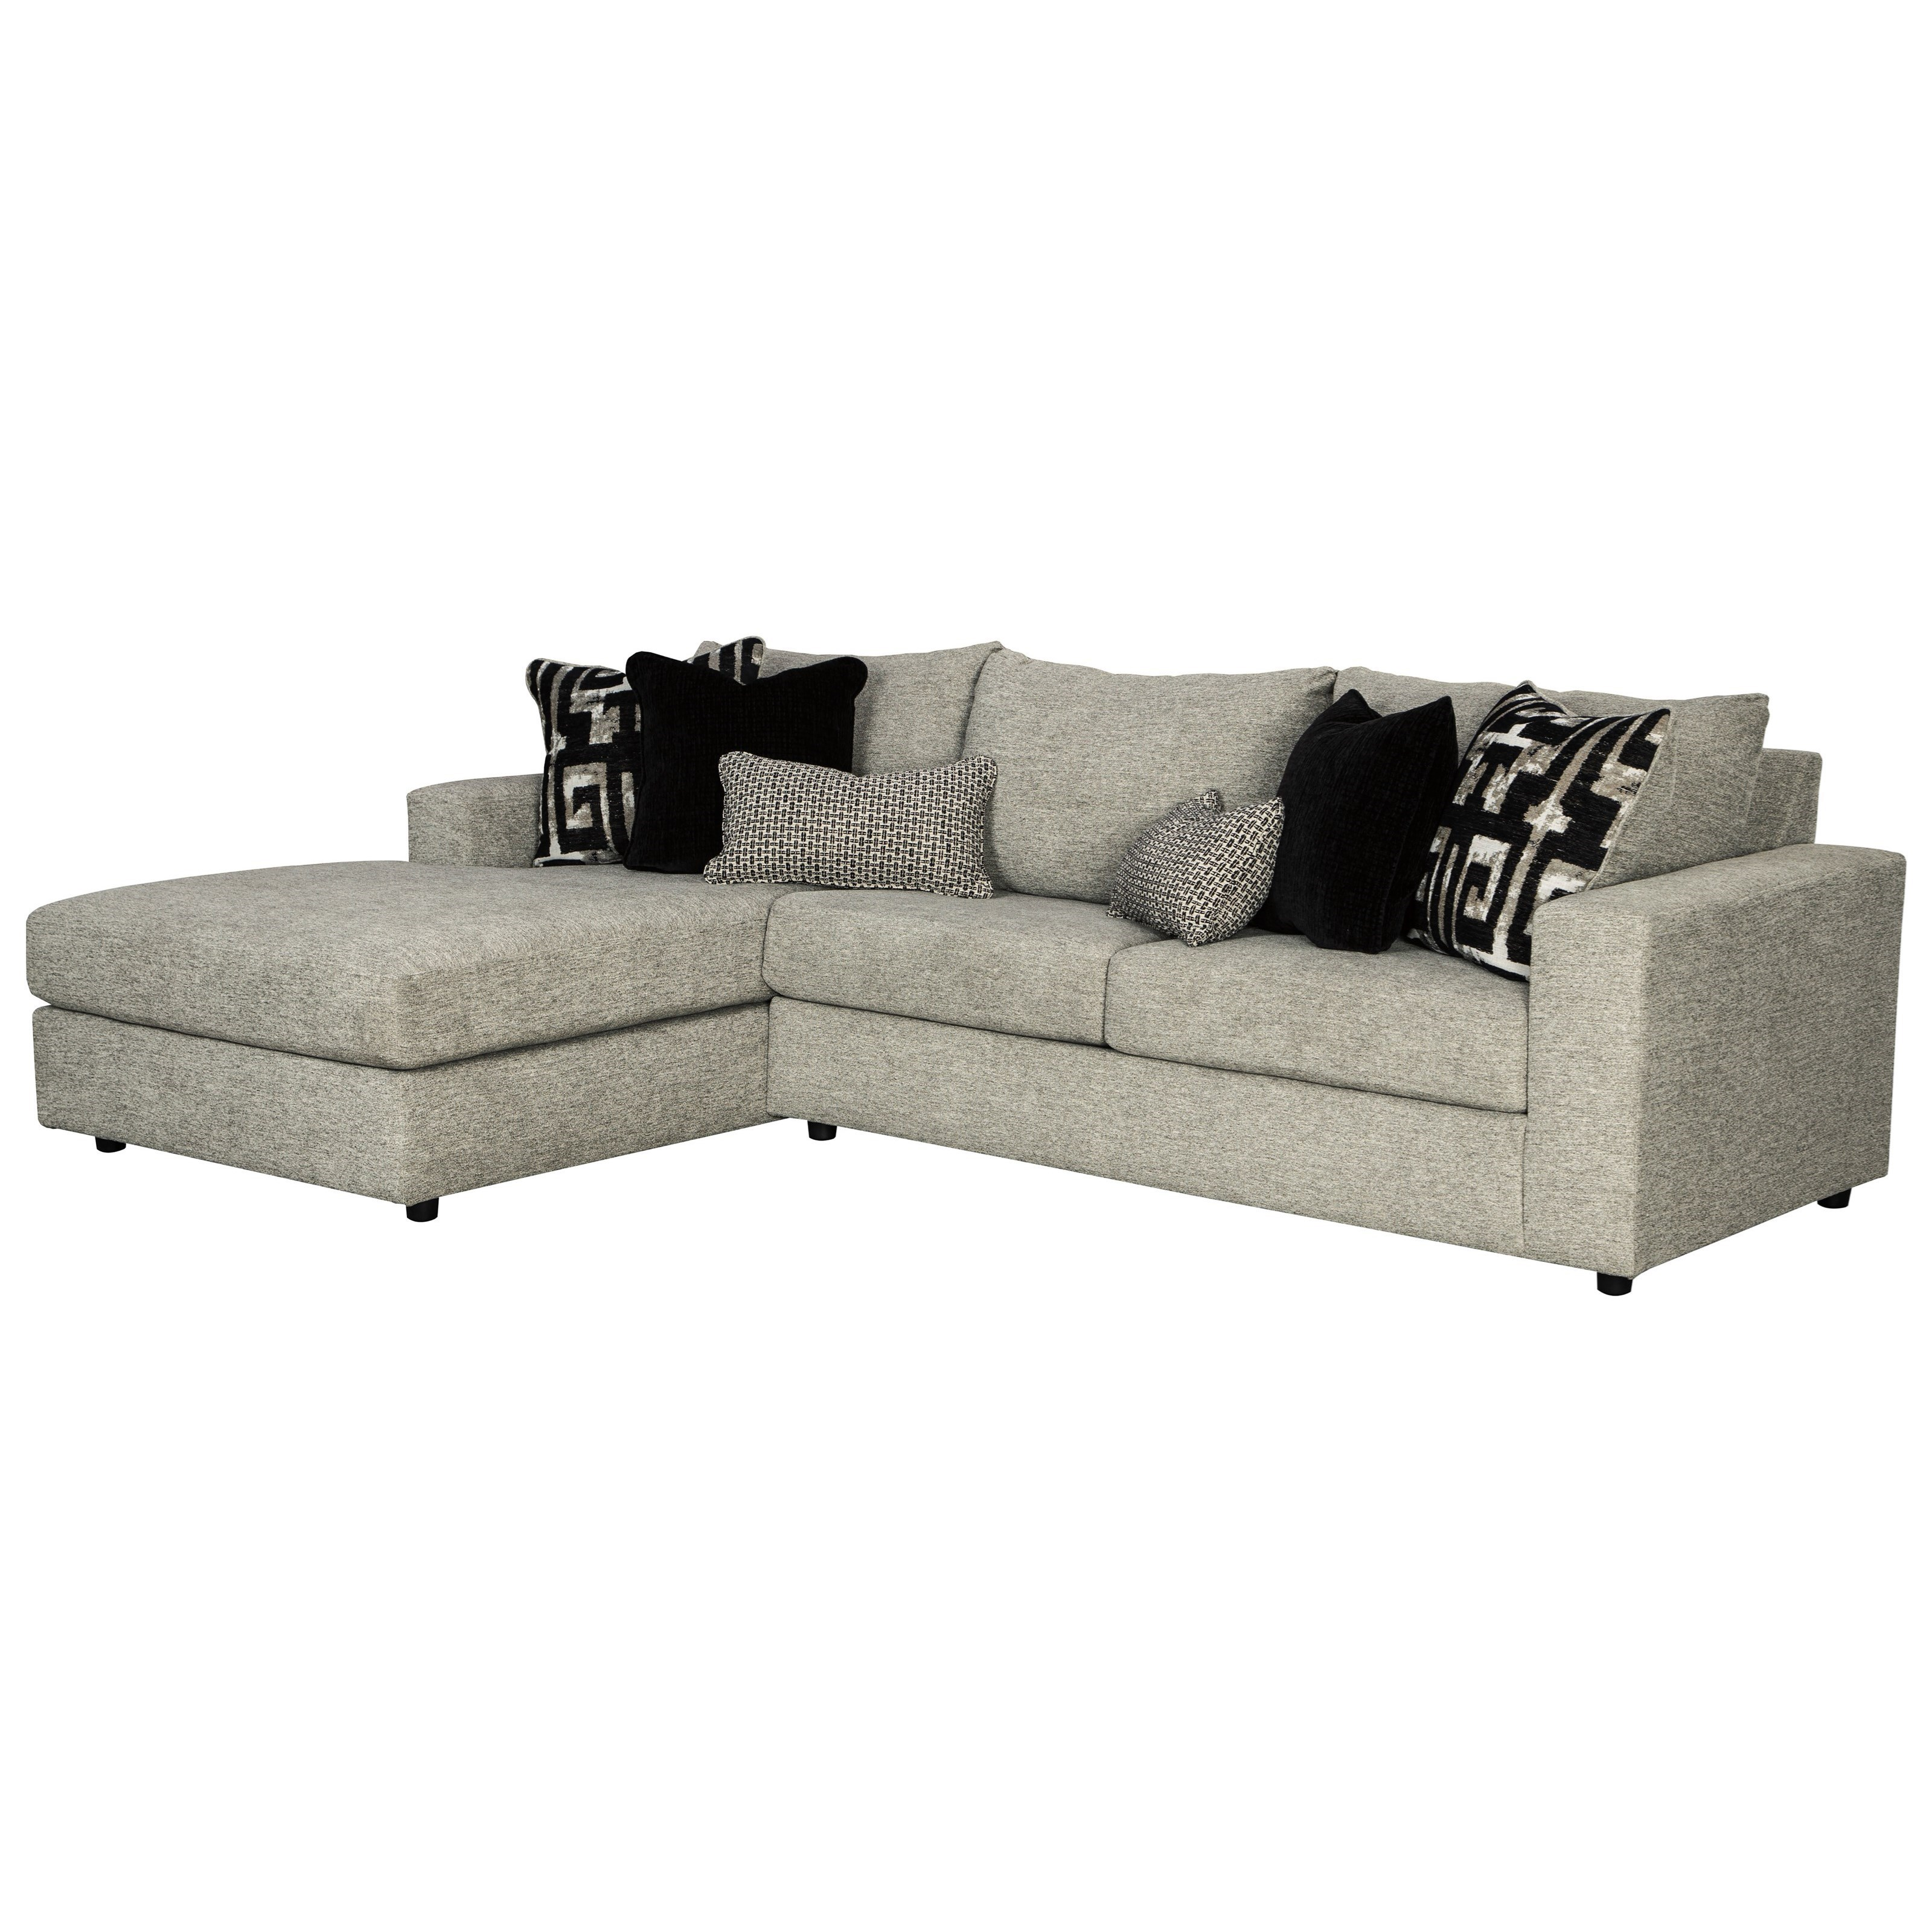 Ravenstone 3 Seat Sectional W Laf Chaise Sleeper